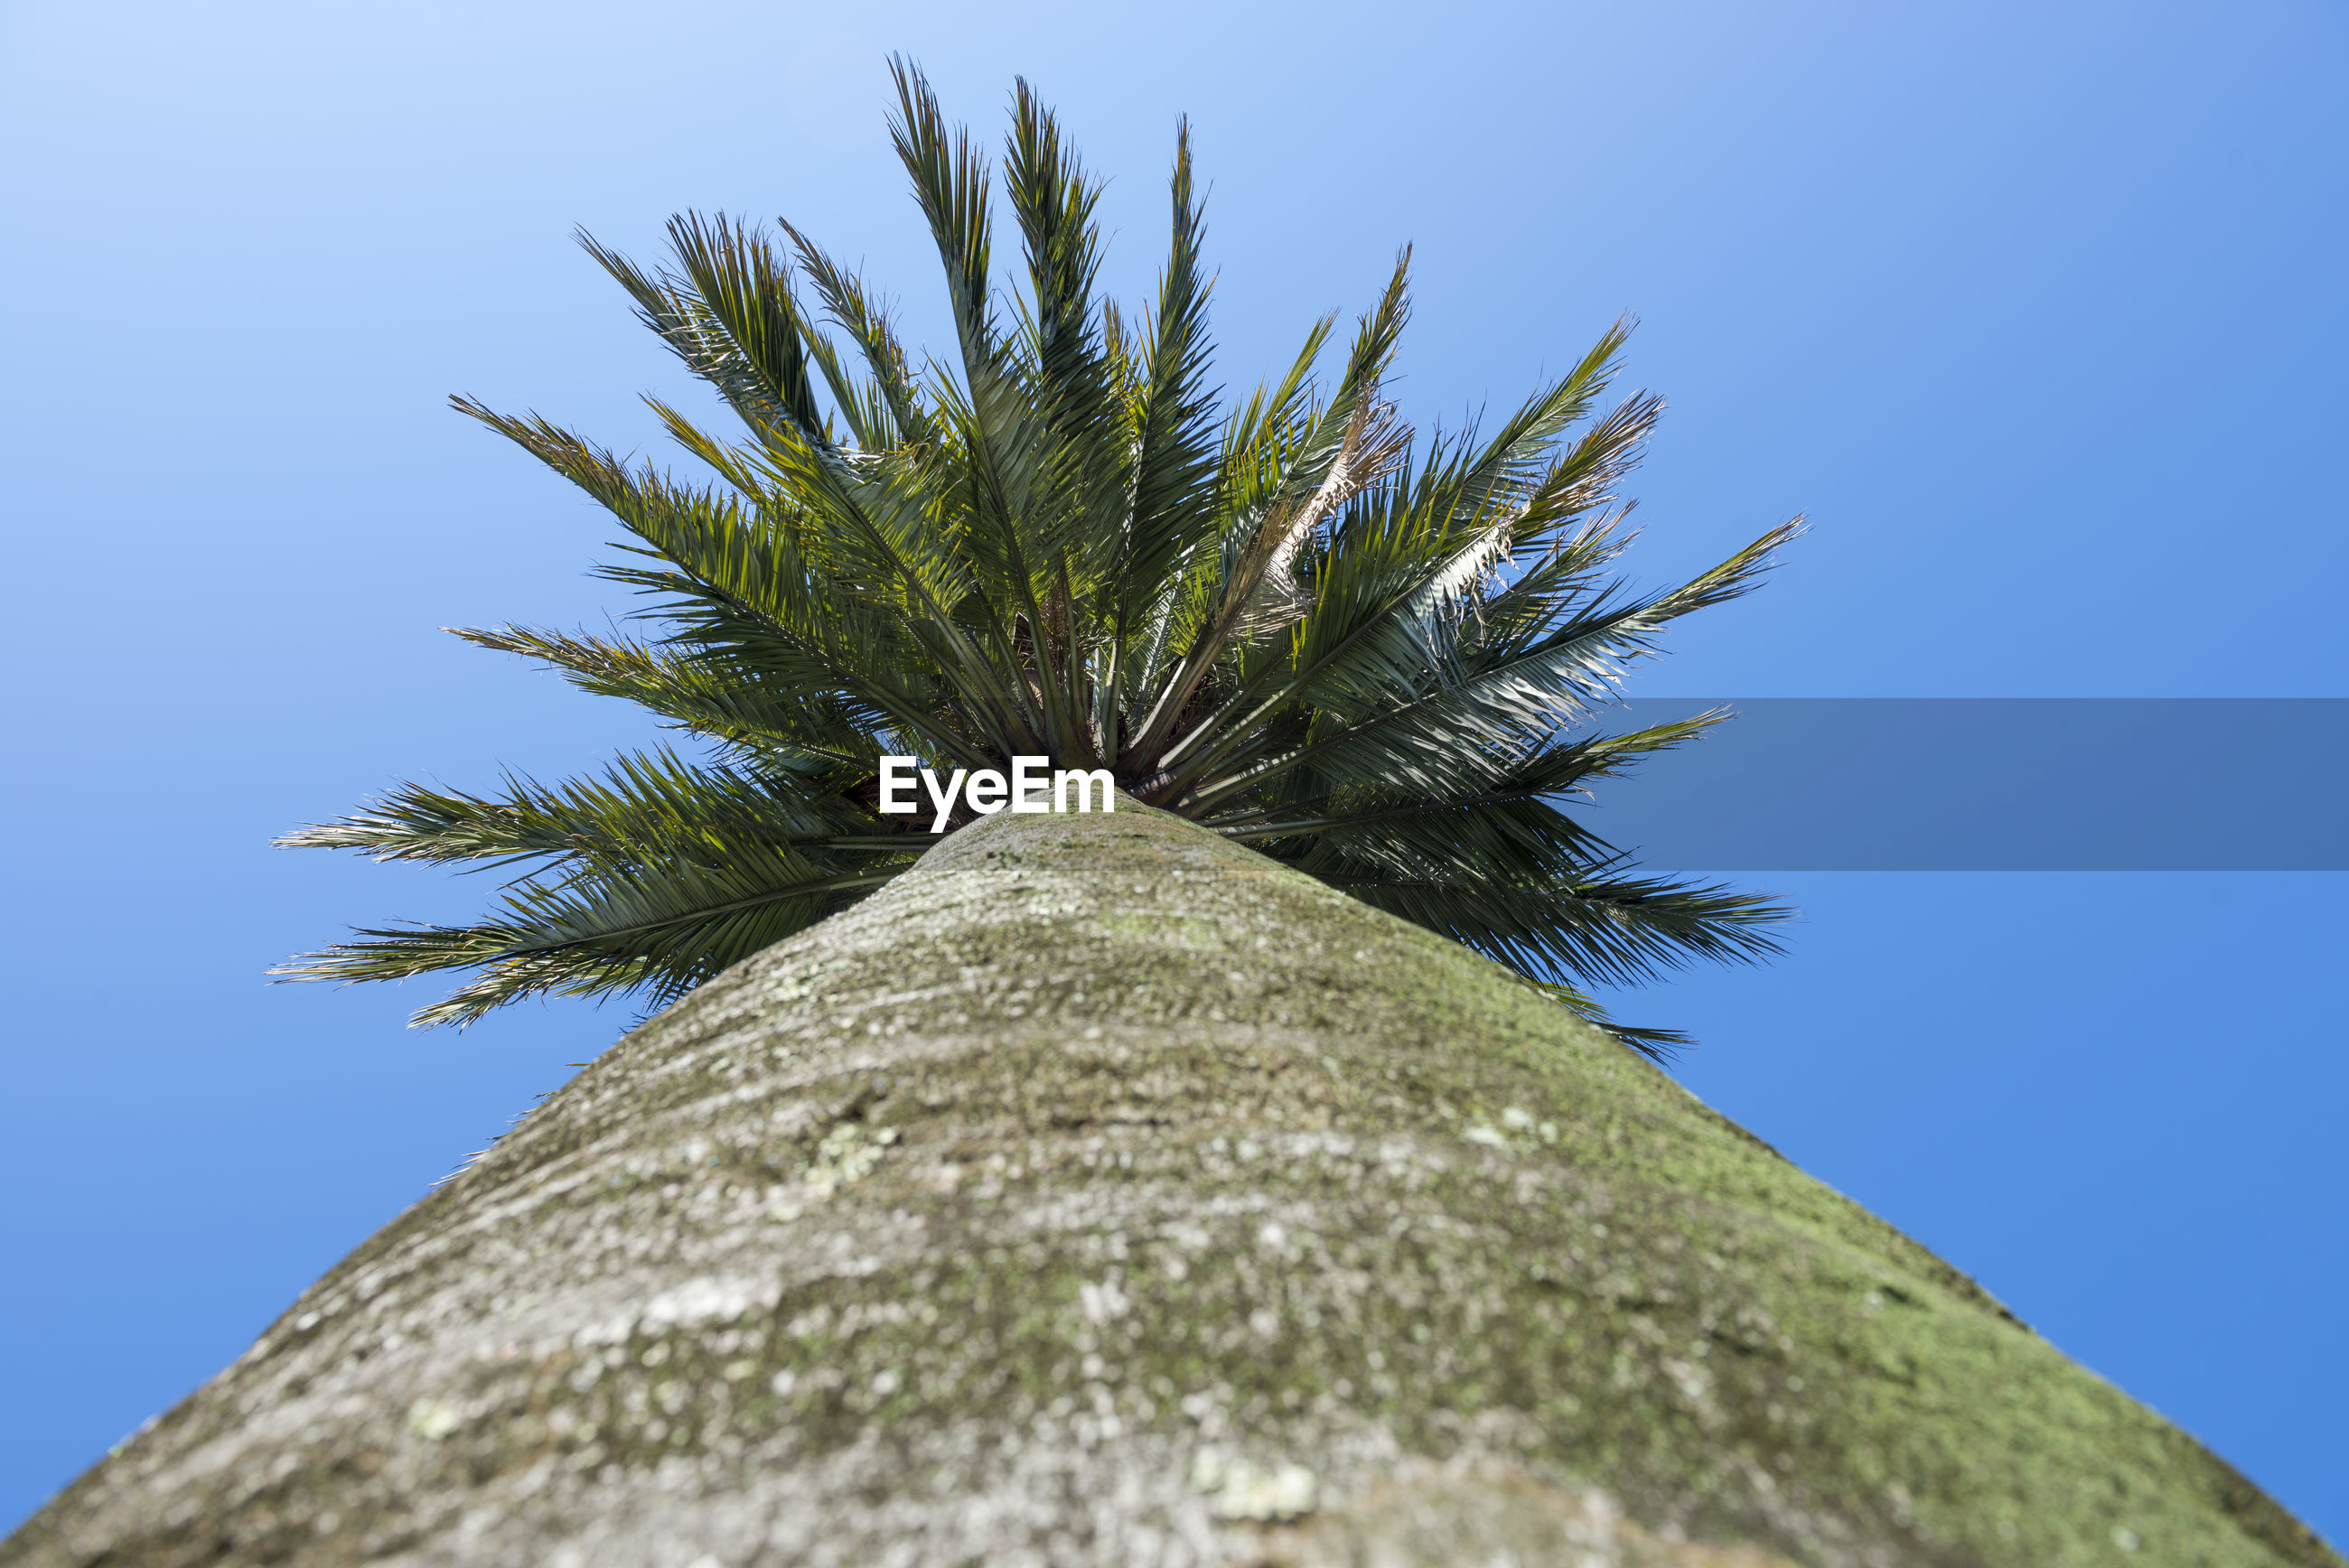 Directly below shot of palm tree against clear blue sky